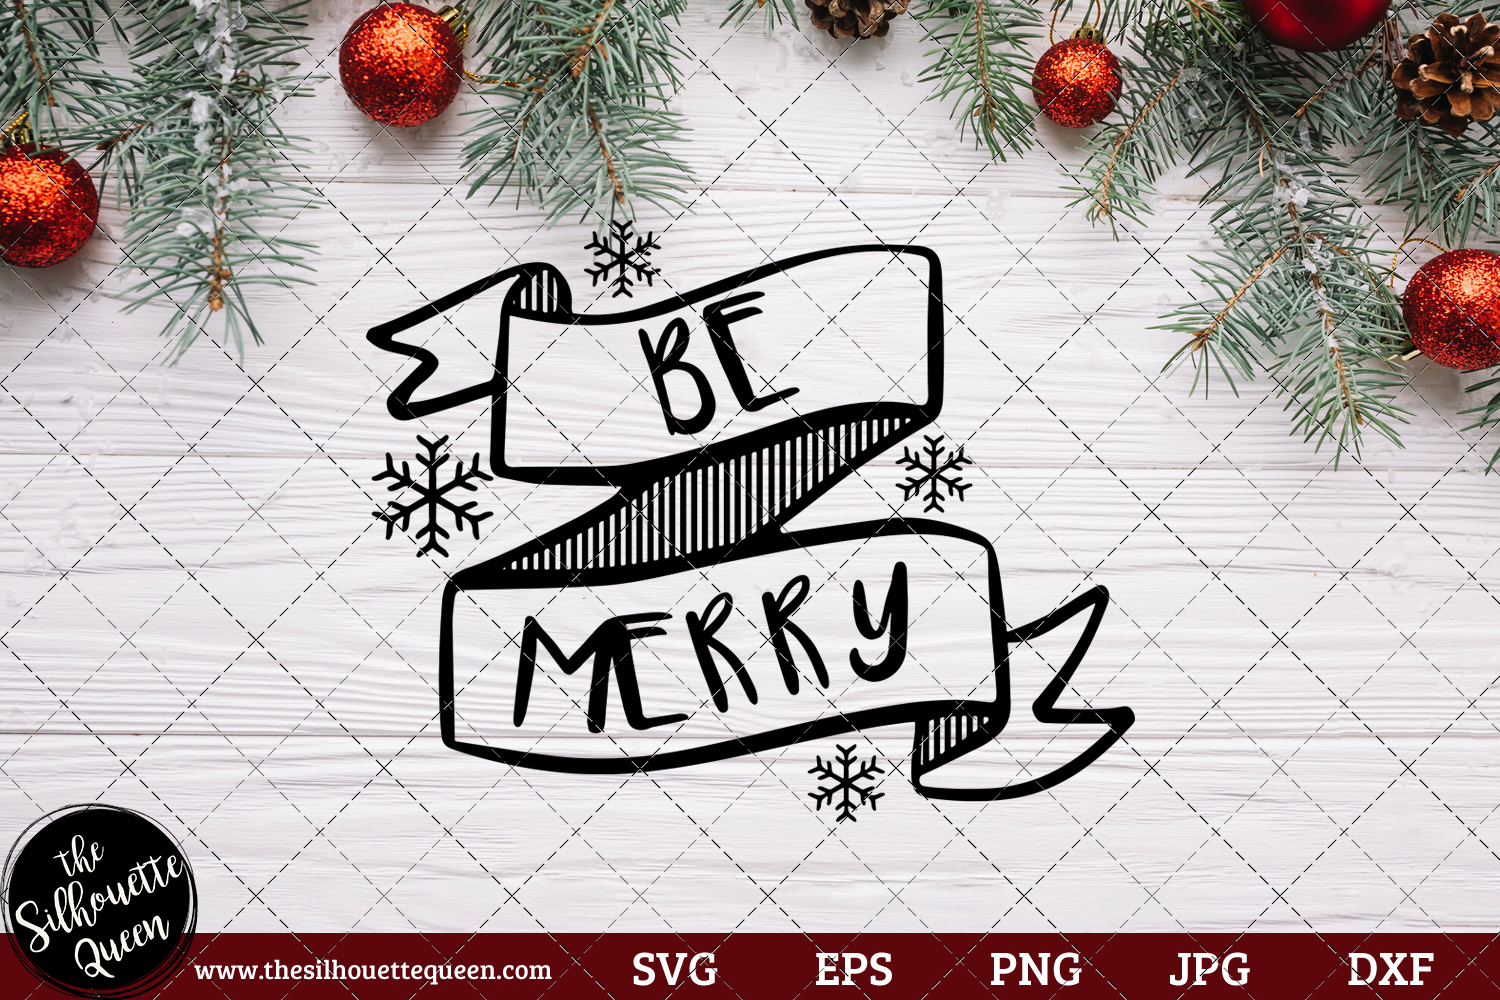 Be Merry Saying Svg Christmas Svg Holiday Svg Holiday Saying Jpg Eps Dxf Png Cut File For Cricut Clipart Silhouette The Silhouette Queen